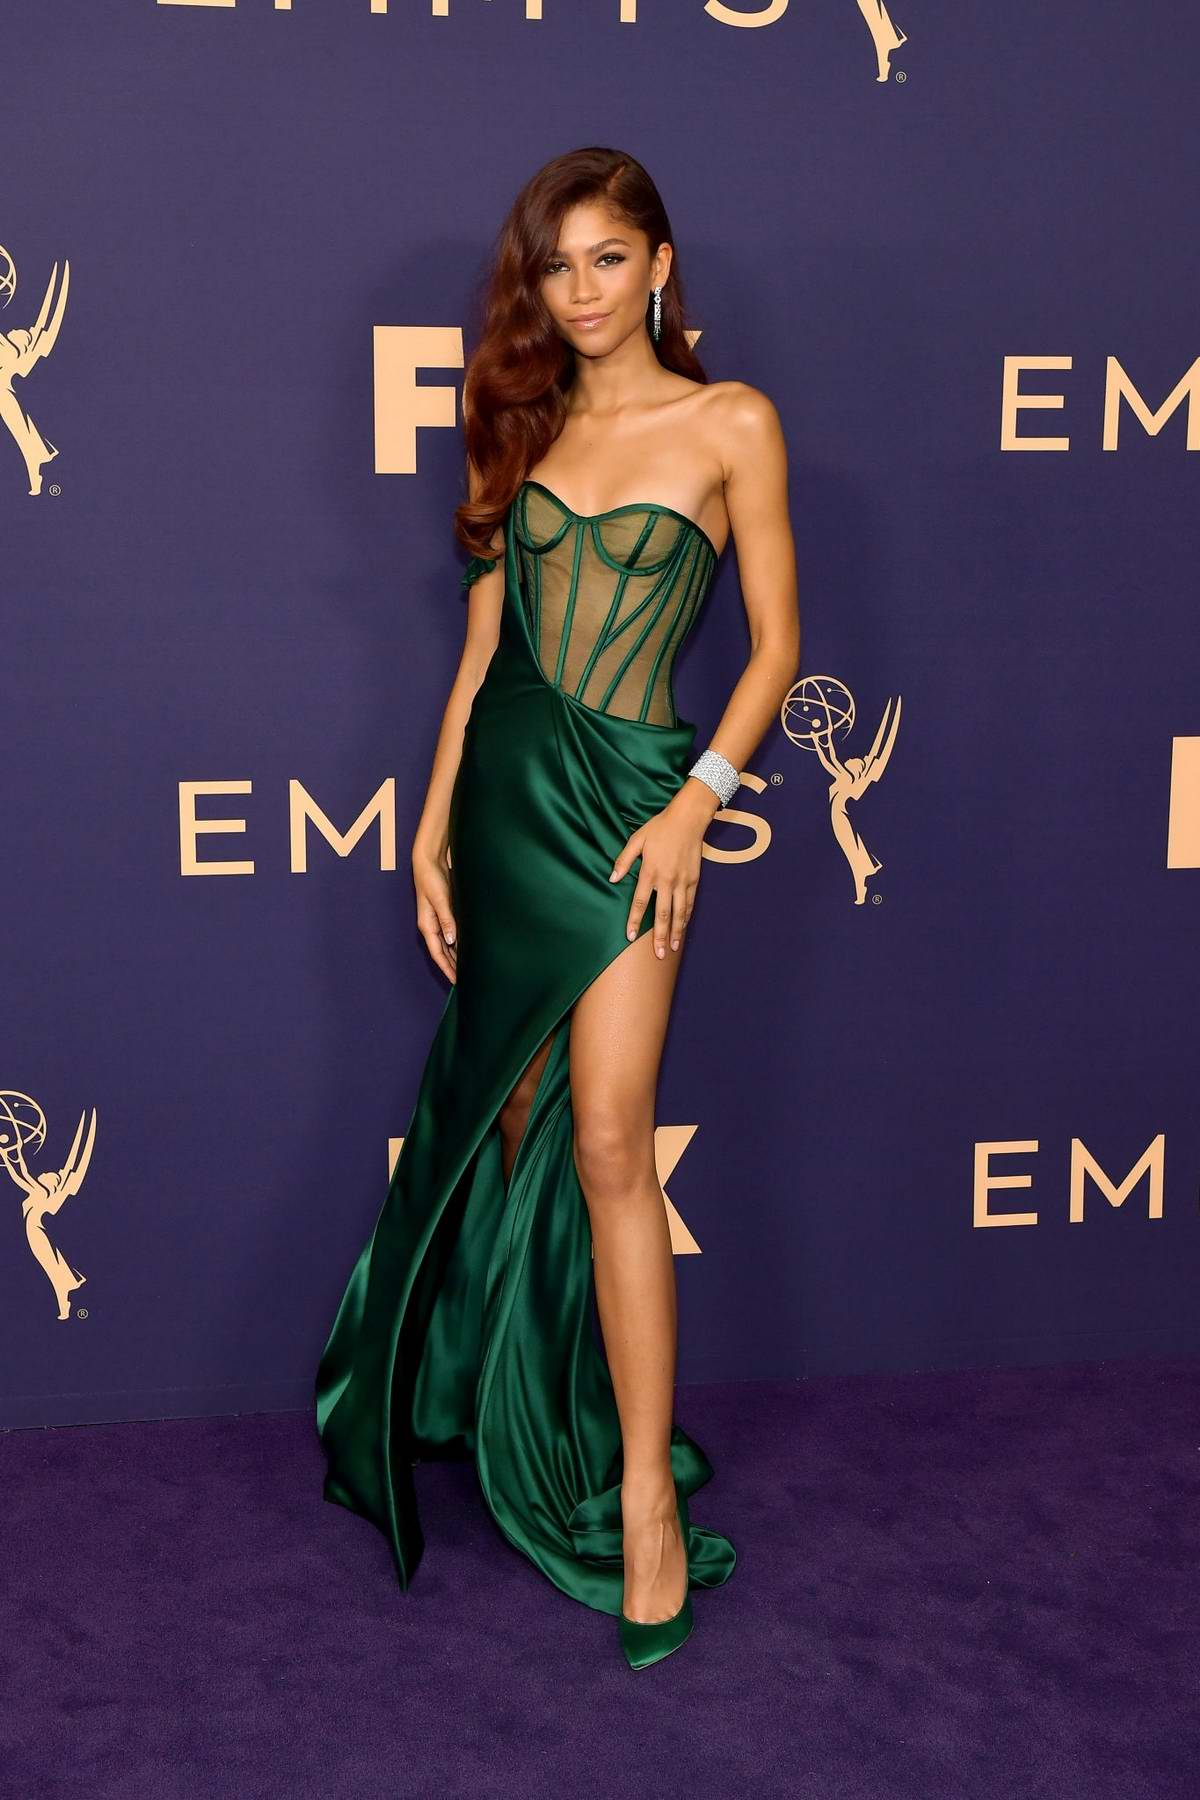 Zendaya attends the 71st Primetime Emmy Awards at Microsoft Theater in Los Angeles